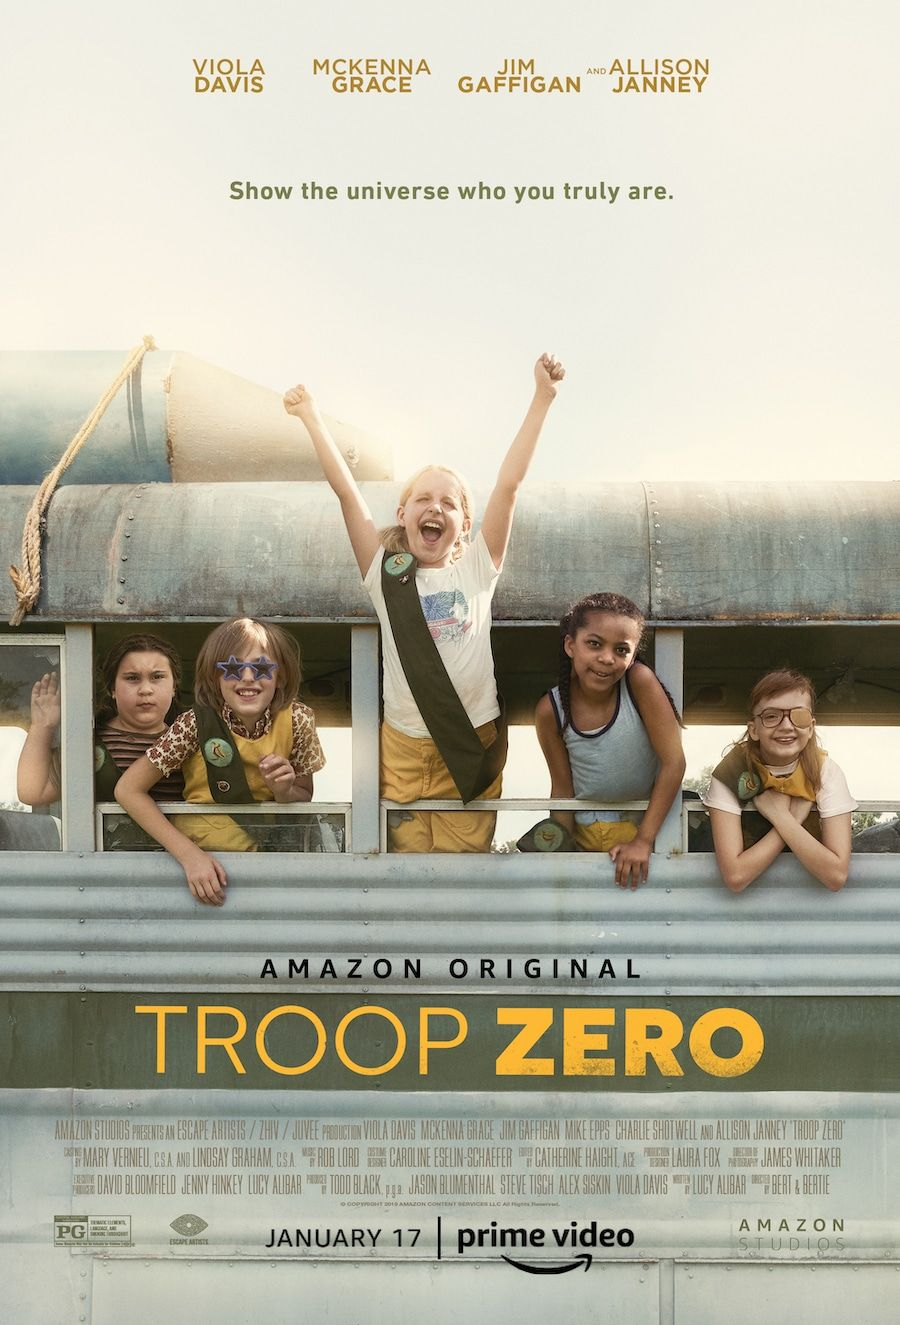 In My Troop Zero Parents Guide To The Movies I M Sharing My Review And Parental Guidance For This Amazon Original Film In 2020 Troops Parenting Guide Family Movies